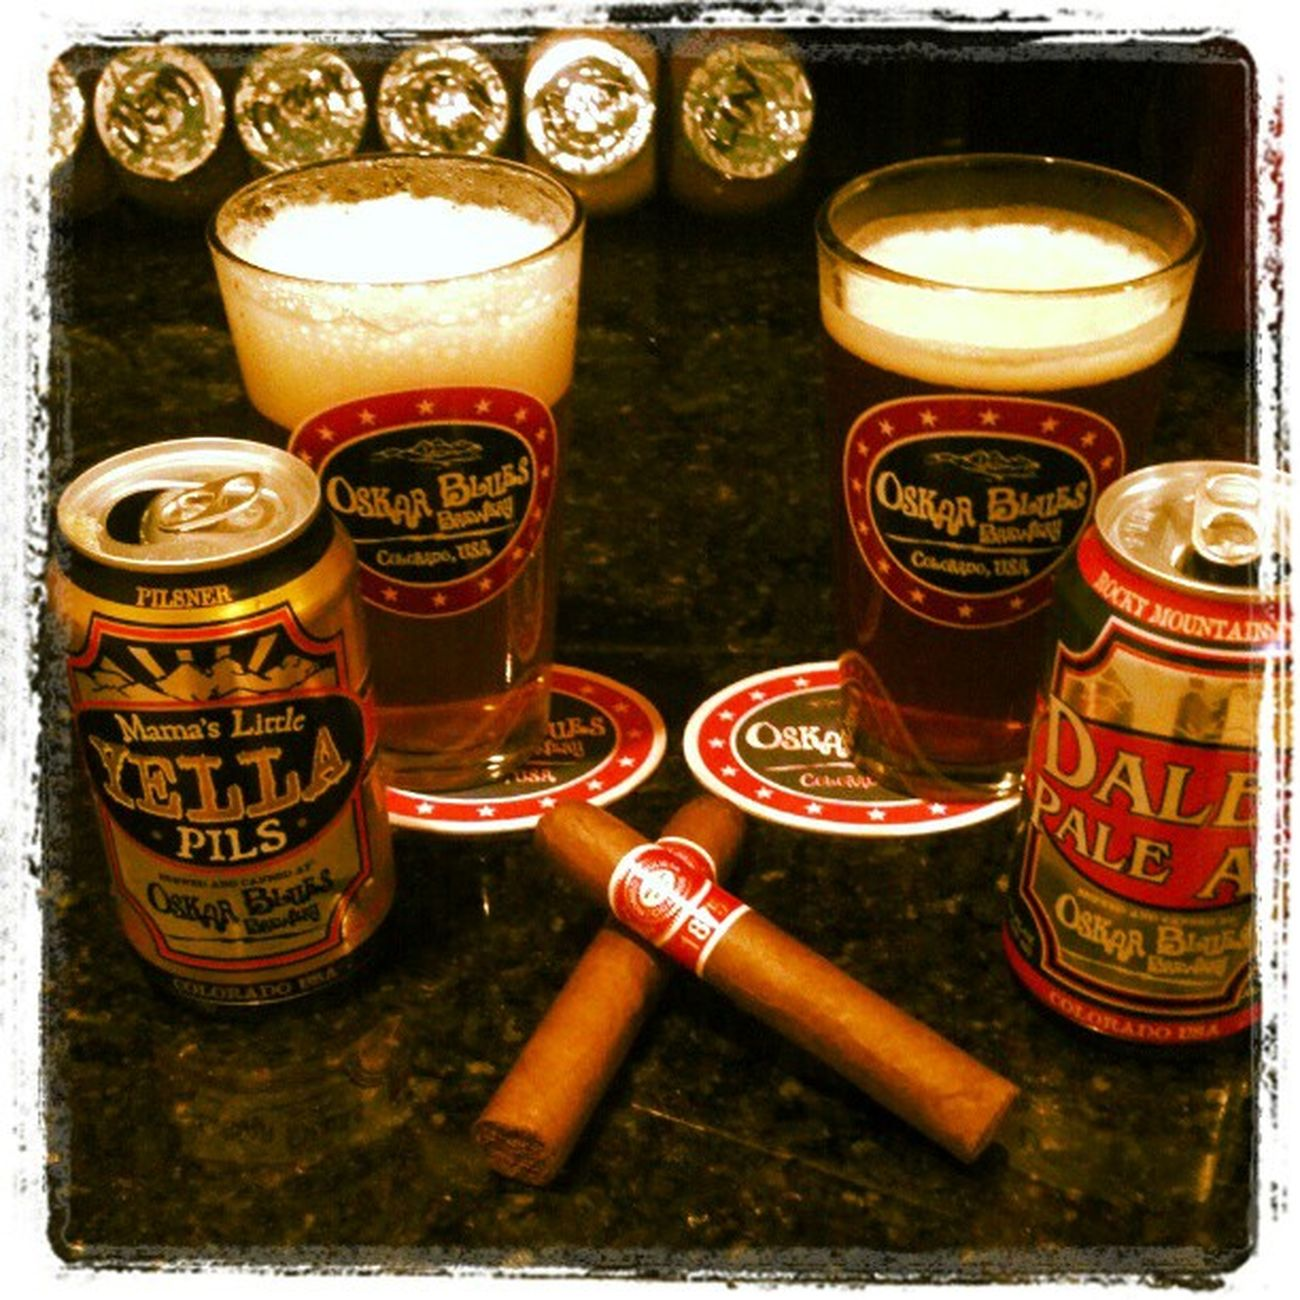 Oskar Blues stretches its Saturday legs Welcometochicago Yesgirlssmokecigars